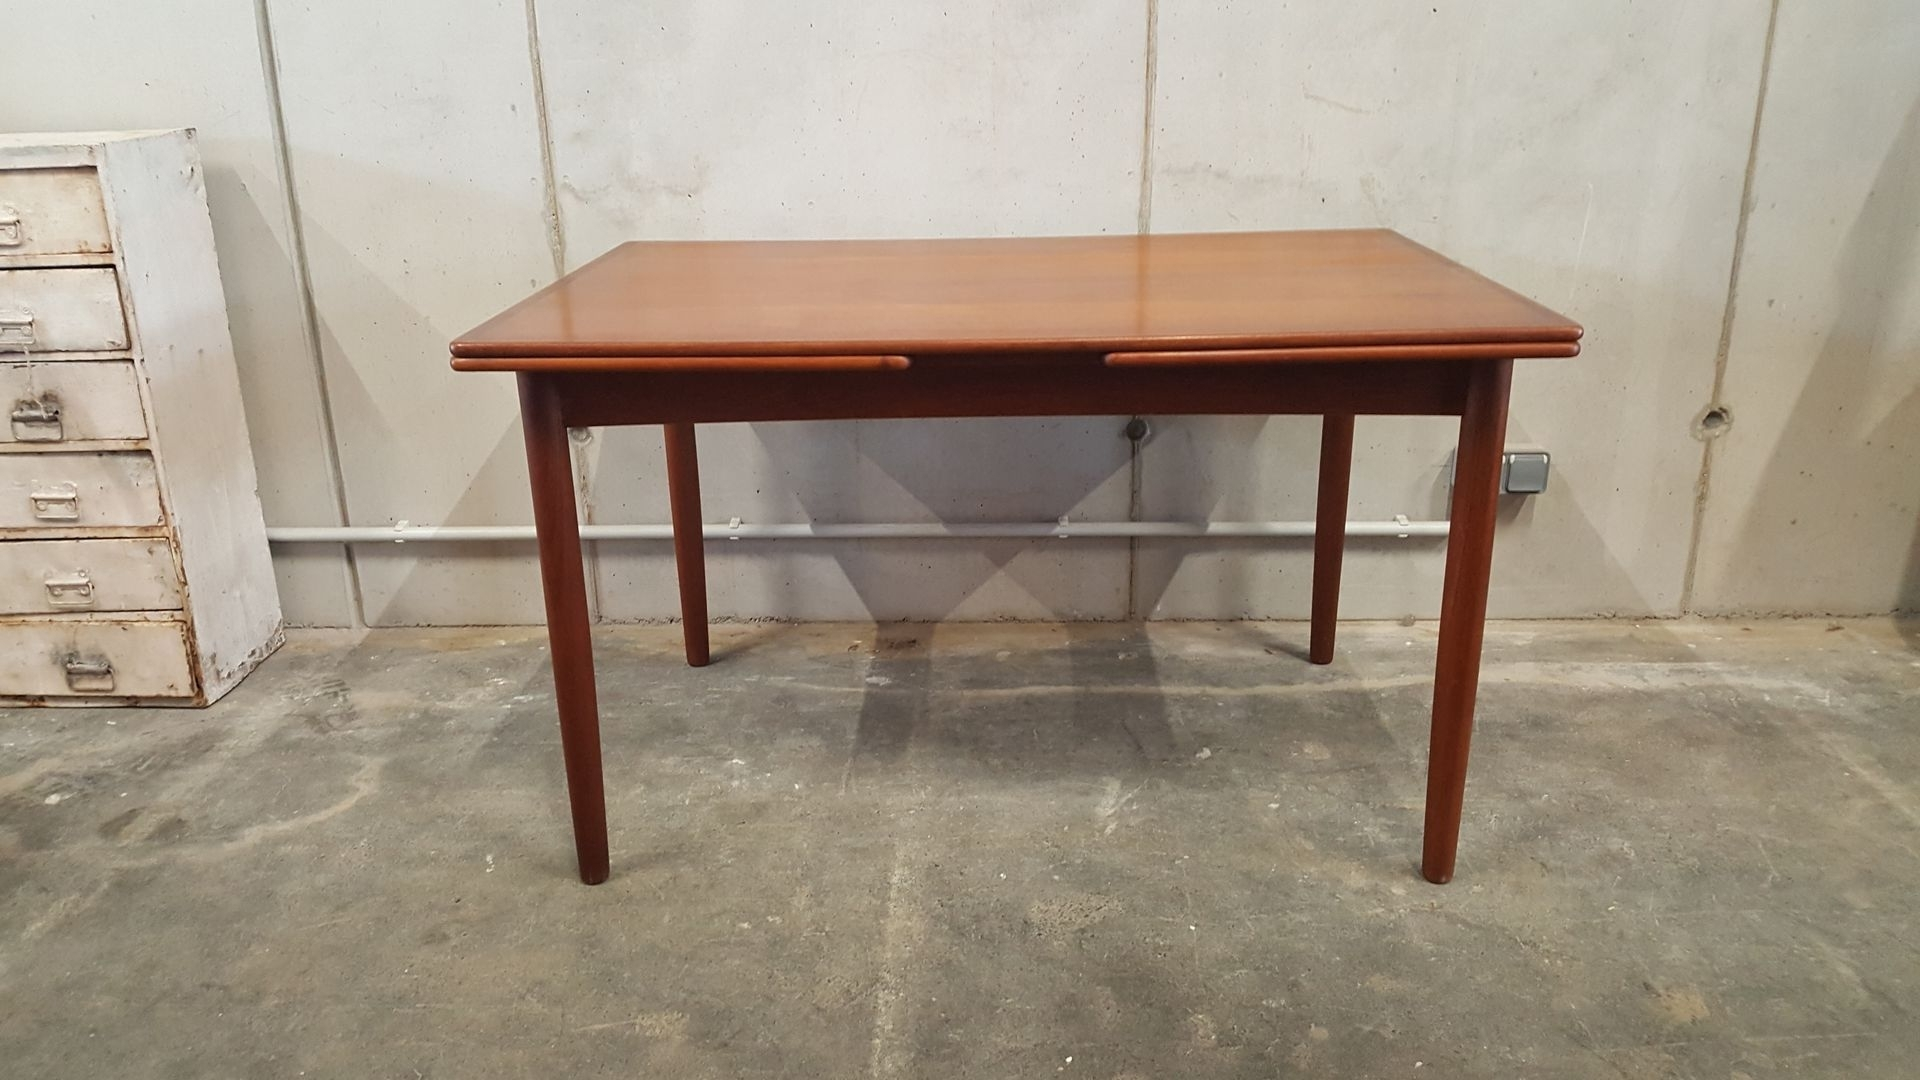 Famous Vintage Teak Extendable Dining Table, 1960S For Sale At Pamono Throughout Extendable Dining Tables (View 12 of 25)